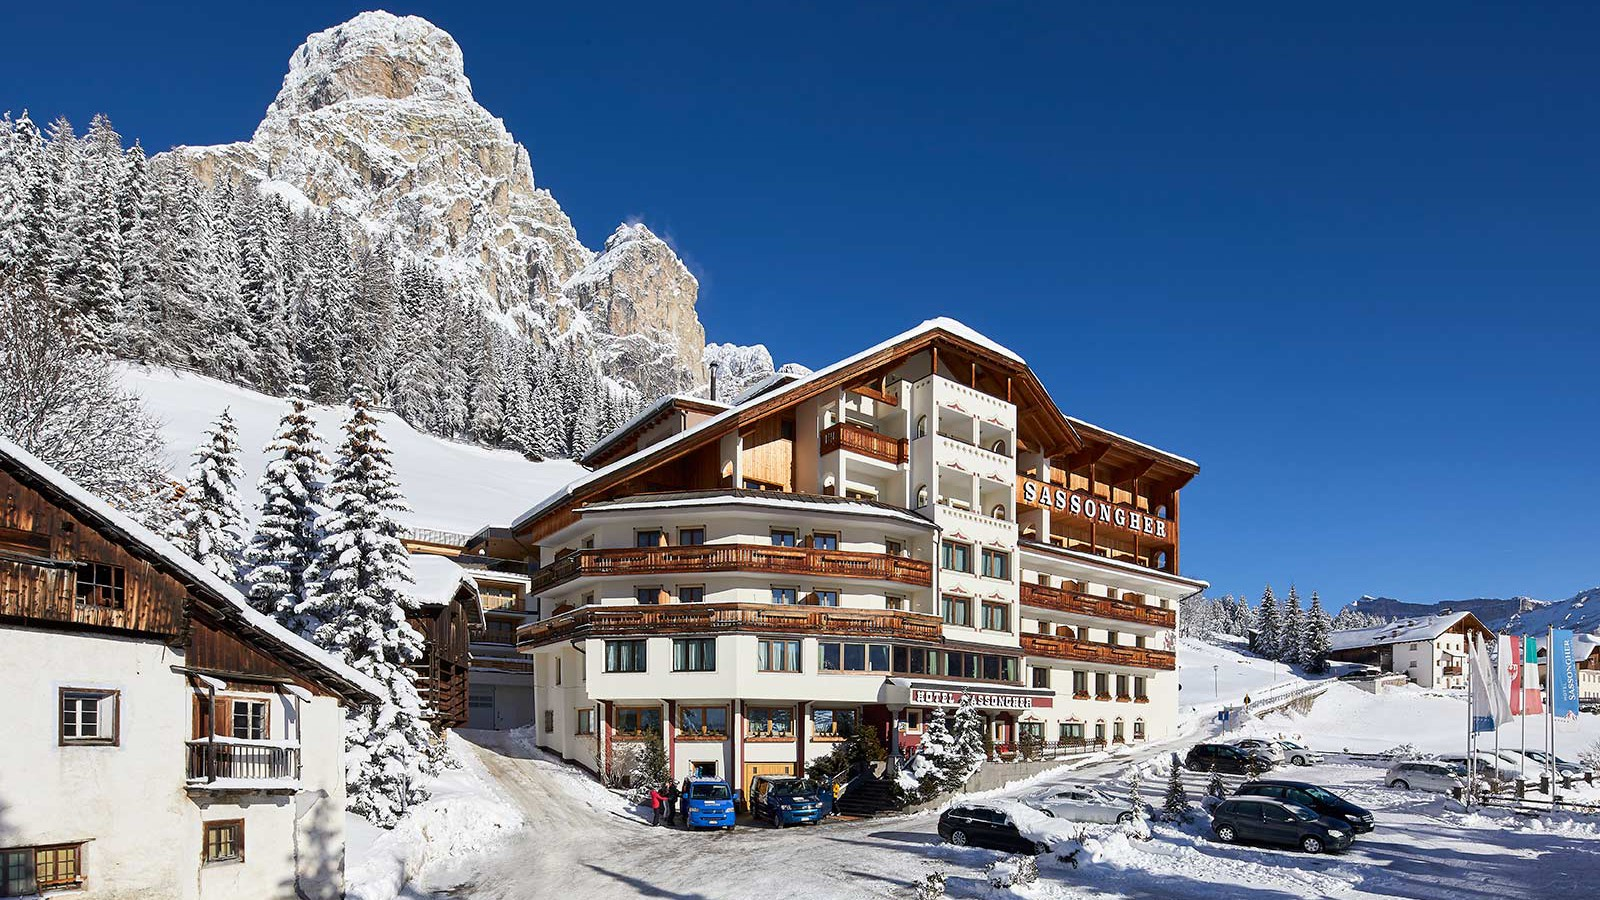 Hotel Sassongher, Corvara and Colfosco - Exterior